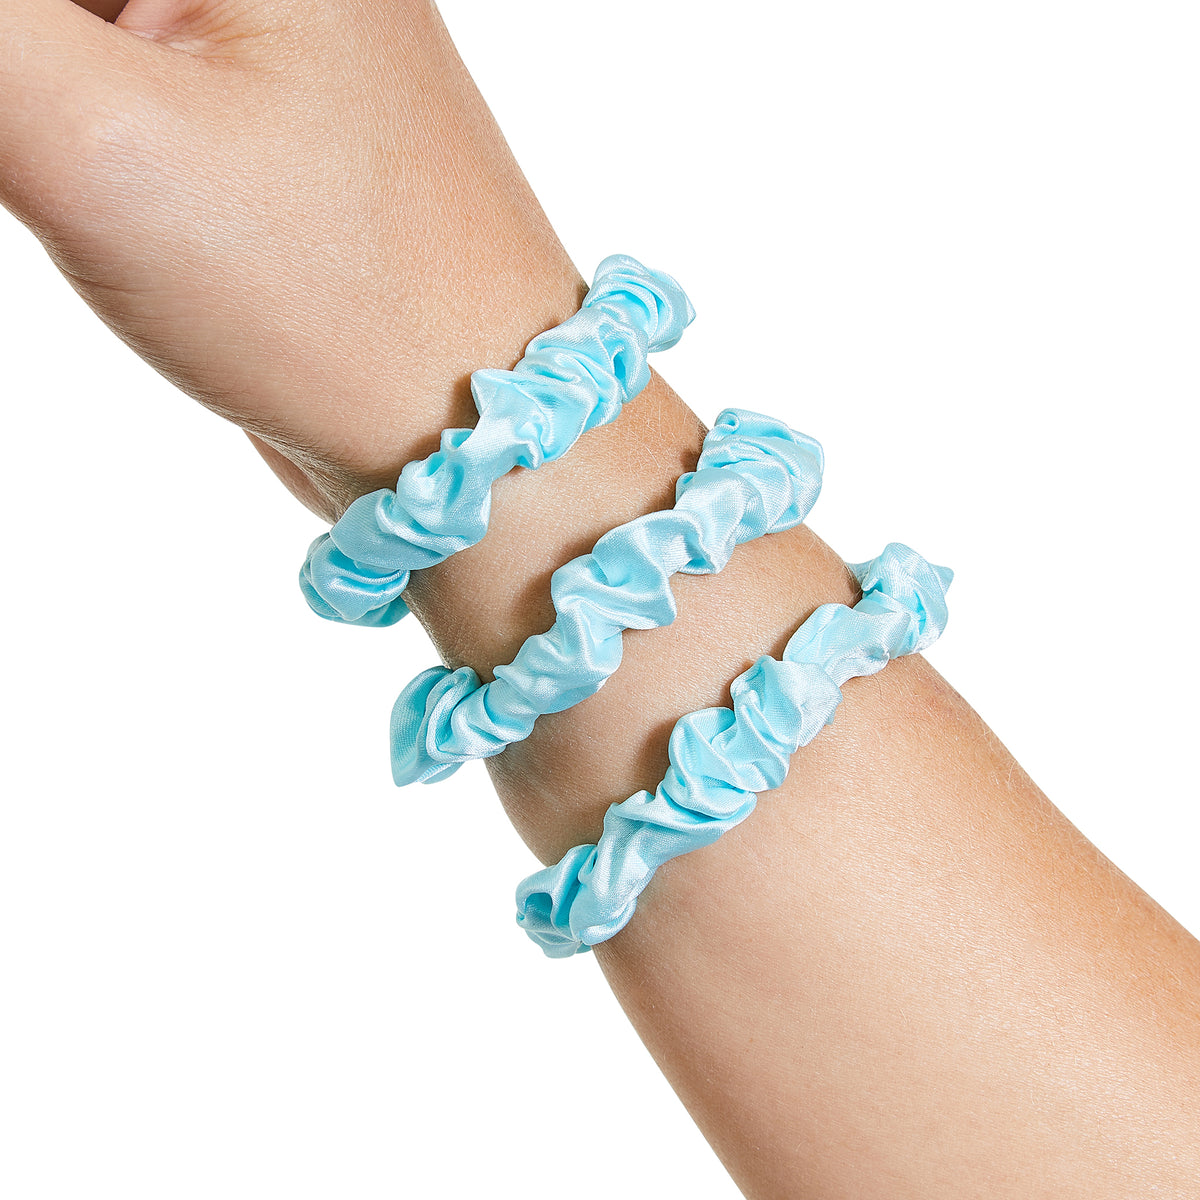 Only Curls Silk Scrunchies - Aqua Mini - Only Curls